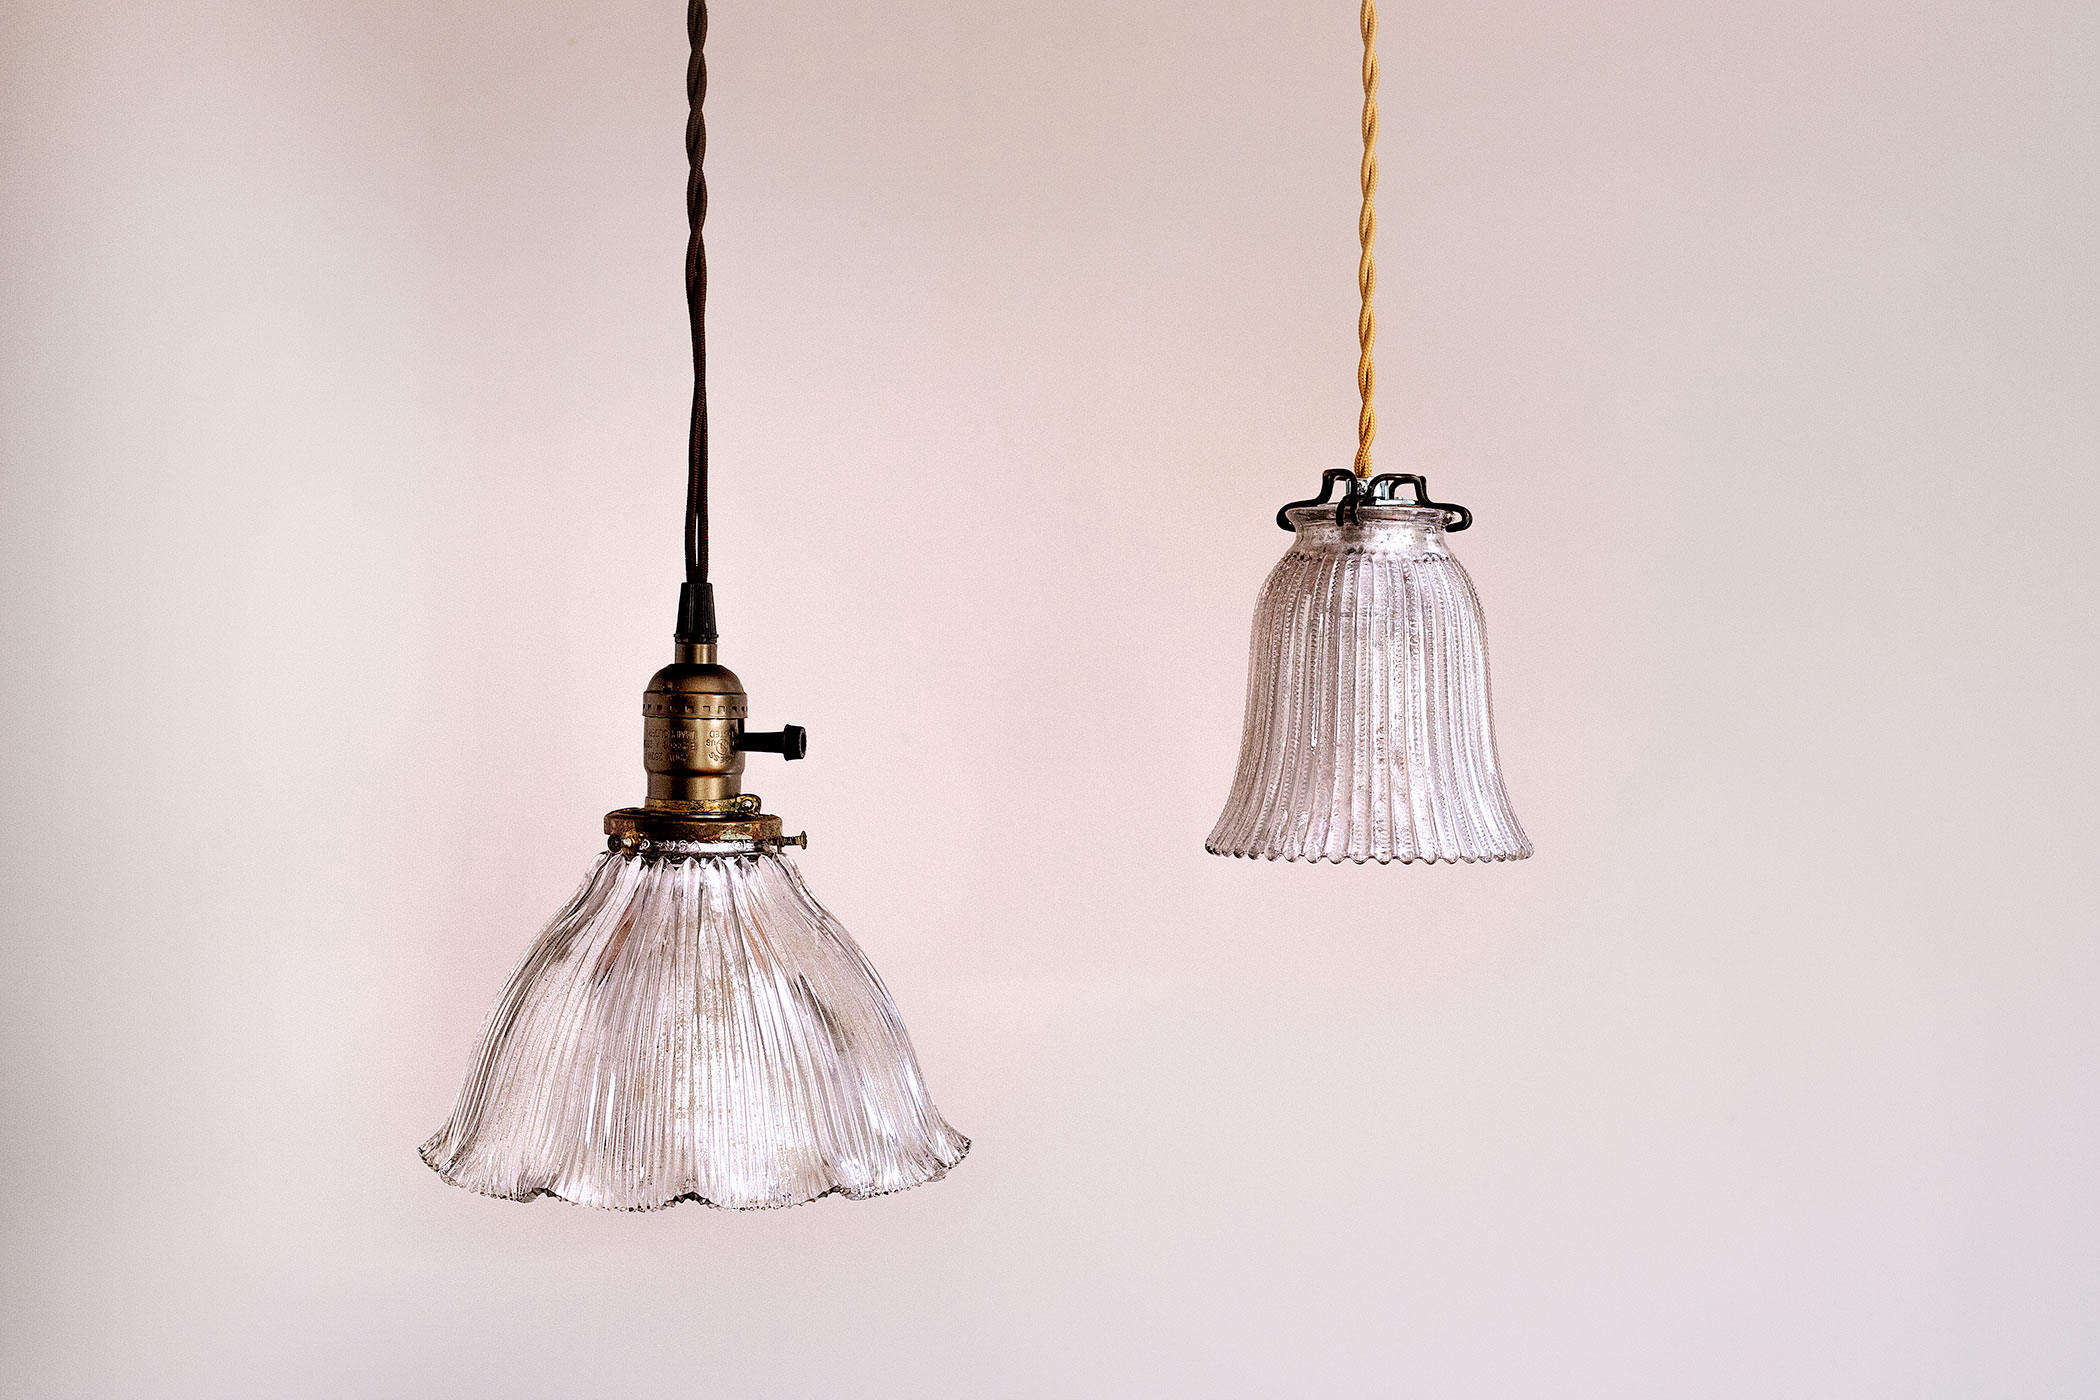 Diy Pendant Lights Australia How To Make A Vintage Looking Mercury Glass Pendant Lights For 25